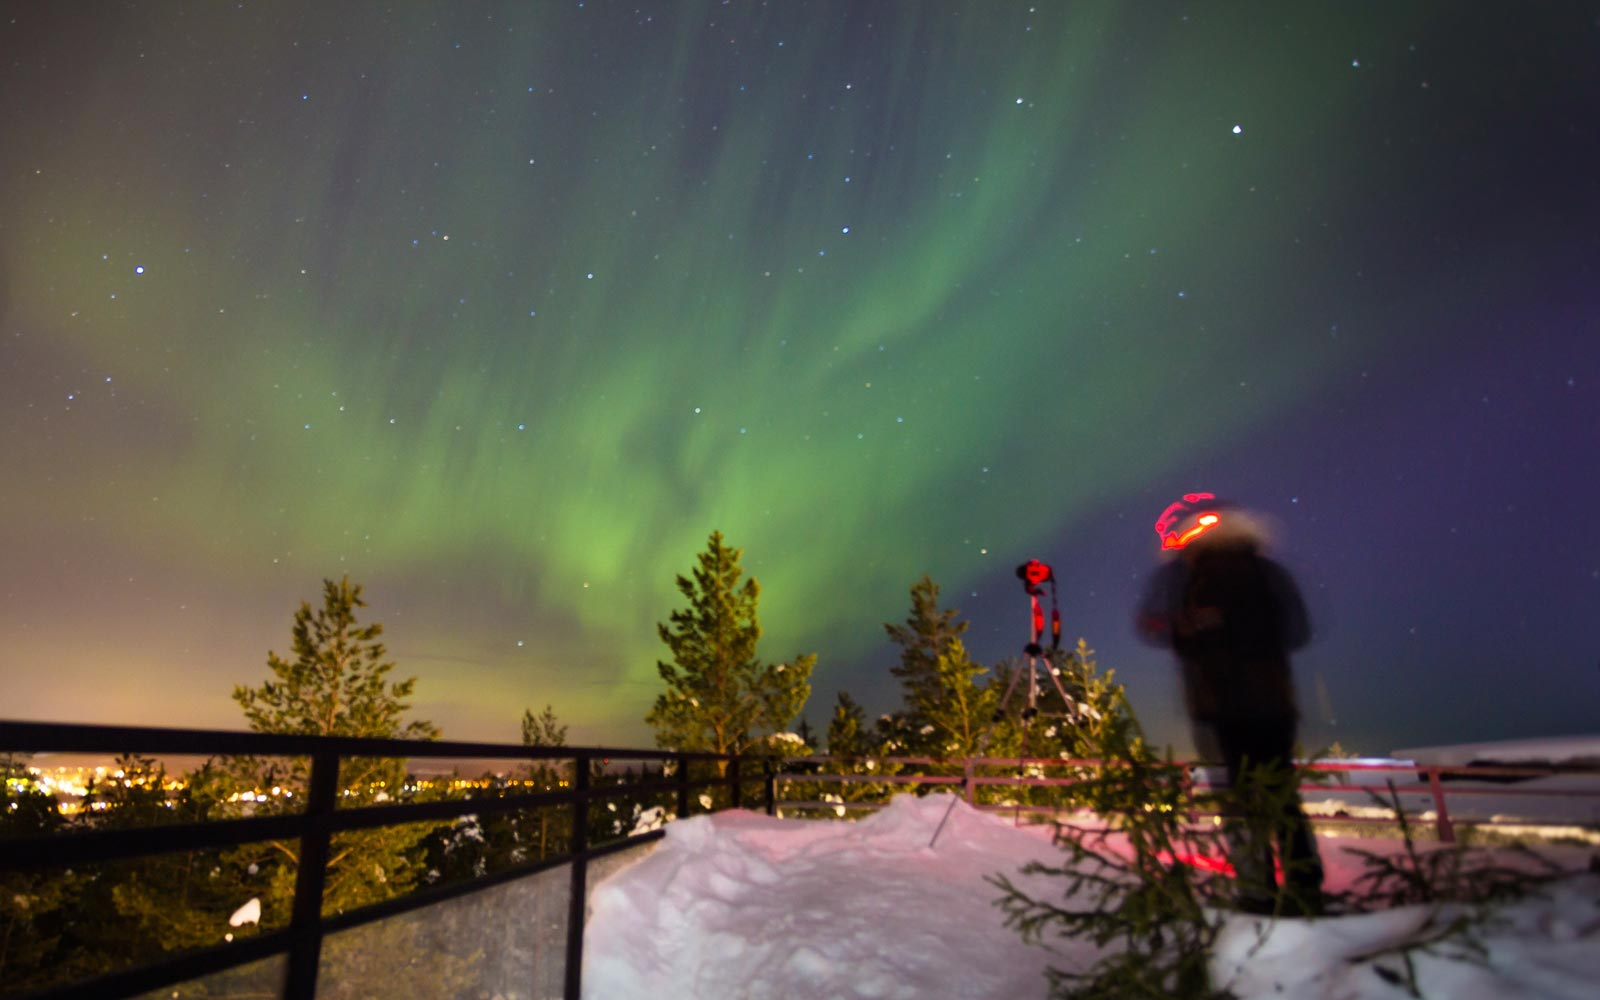 Photographer captures amazing Northern Lights aurora borealis in Rovaniemi, Finland.